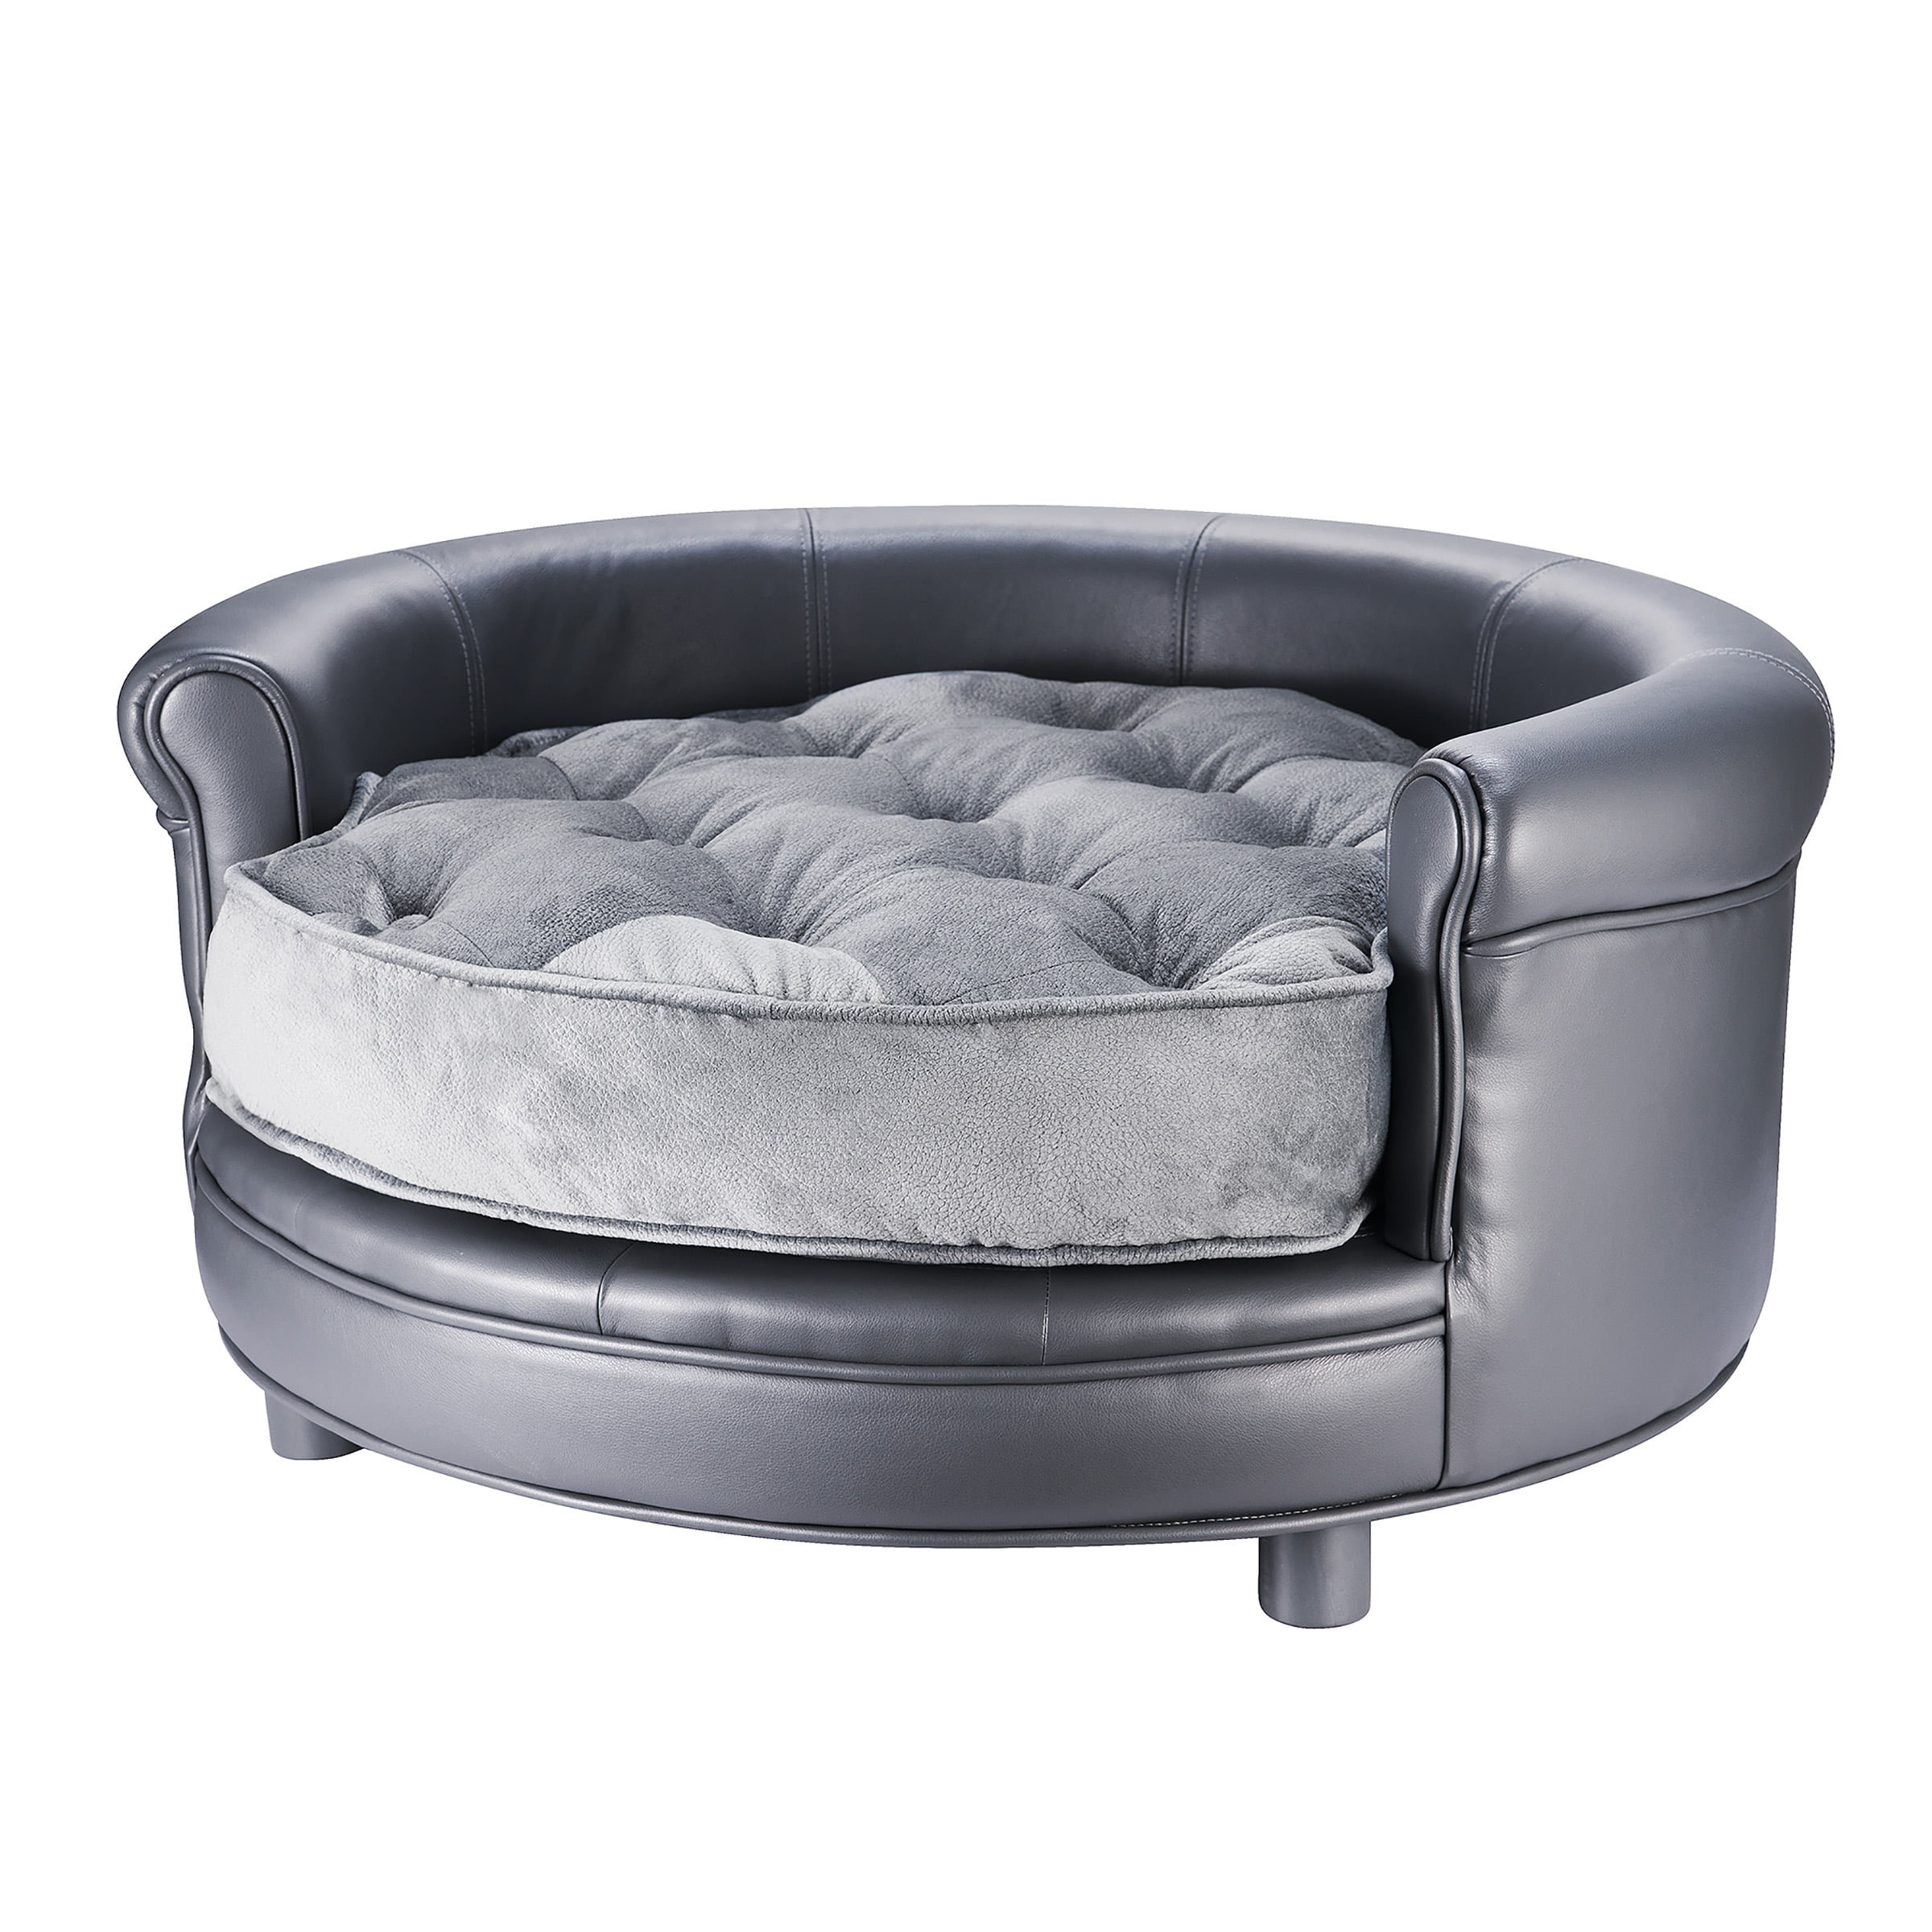 Picture of: Chesterfield Faux Leather Large Dog Bed Designer Pet Sofa By Villacera Gray Walmart Com Walmart Com